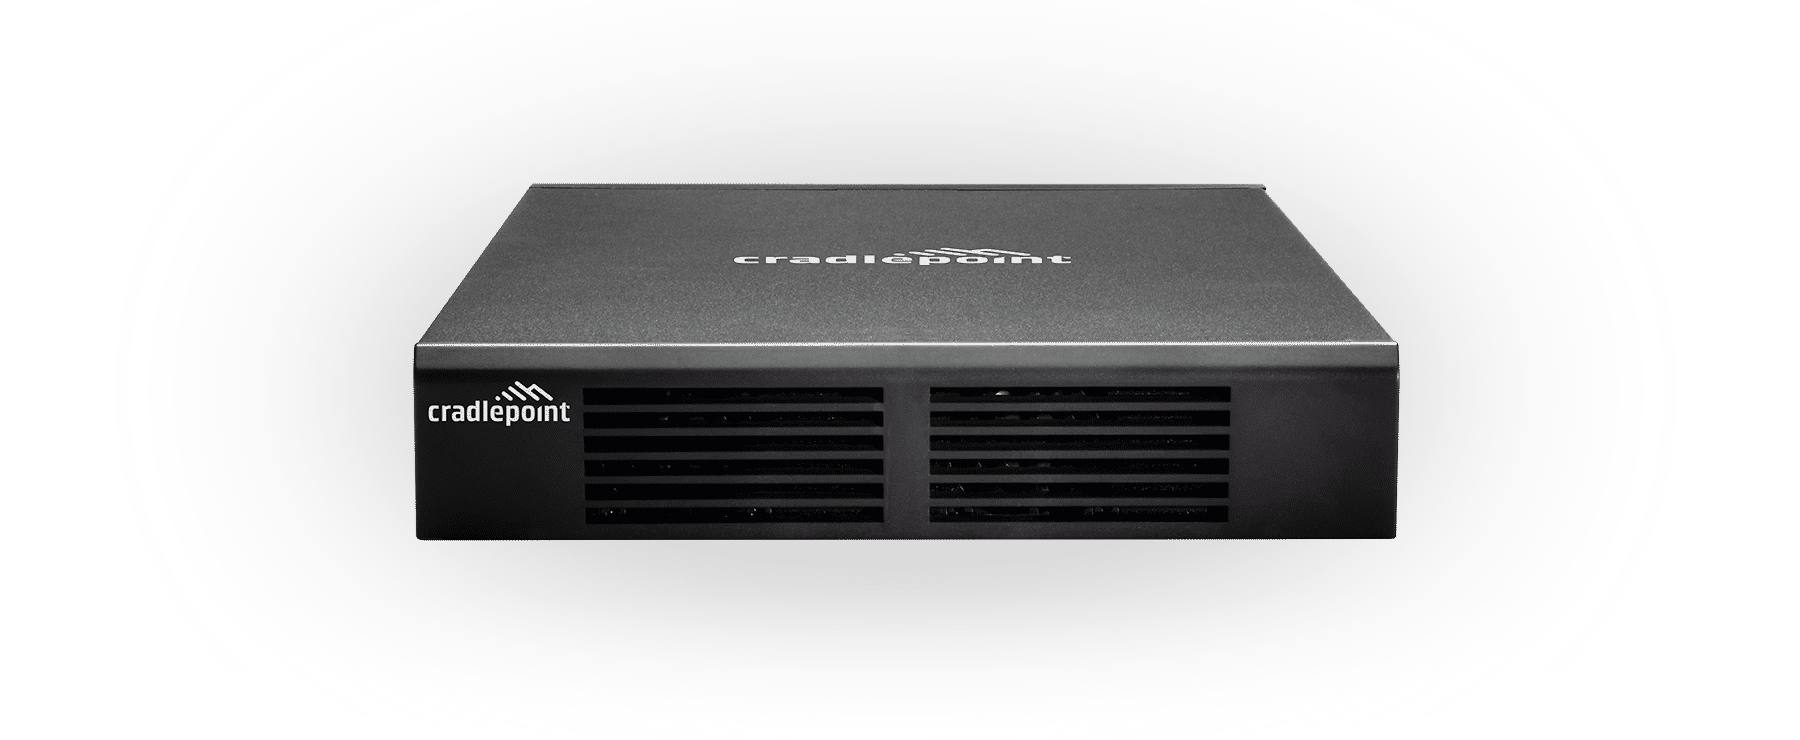 CR4250 Series Router